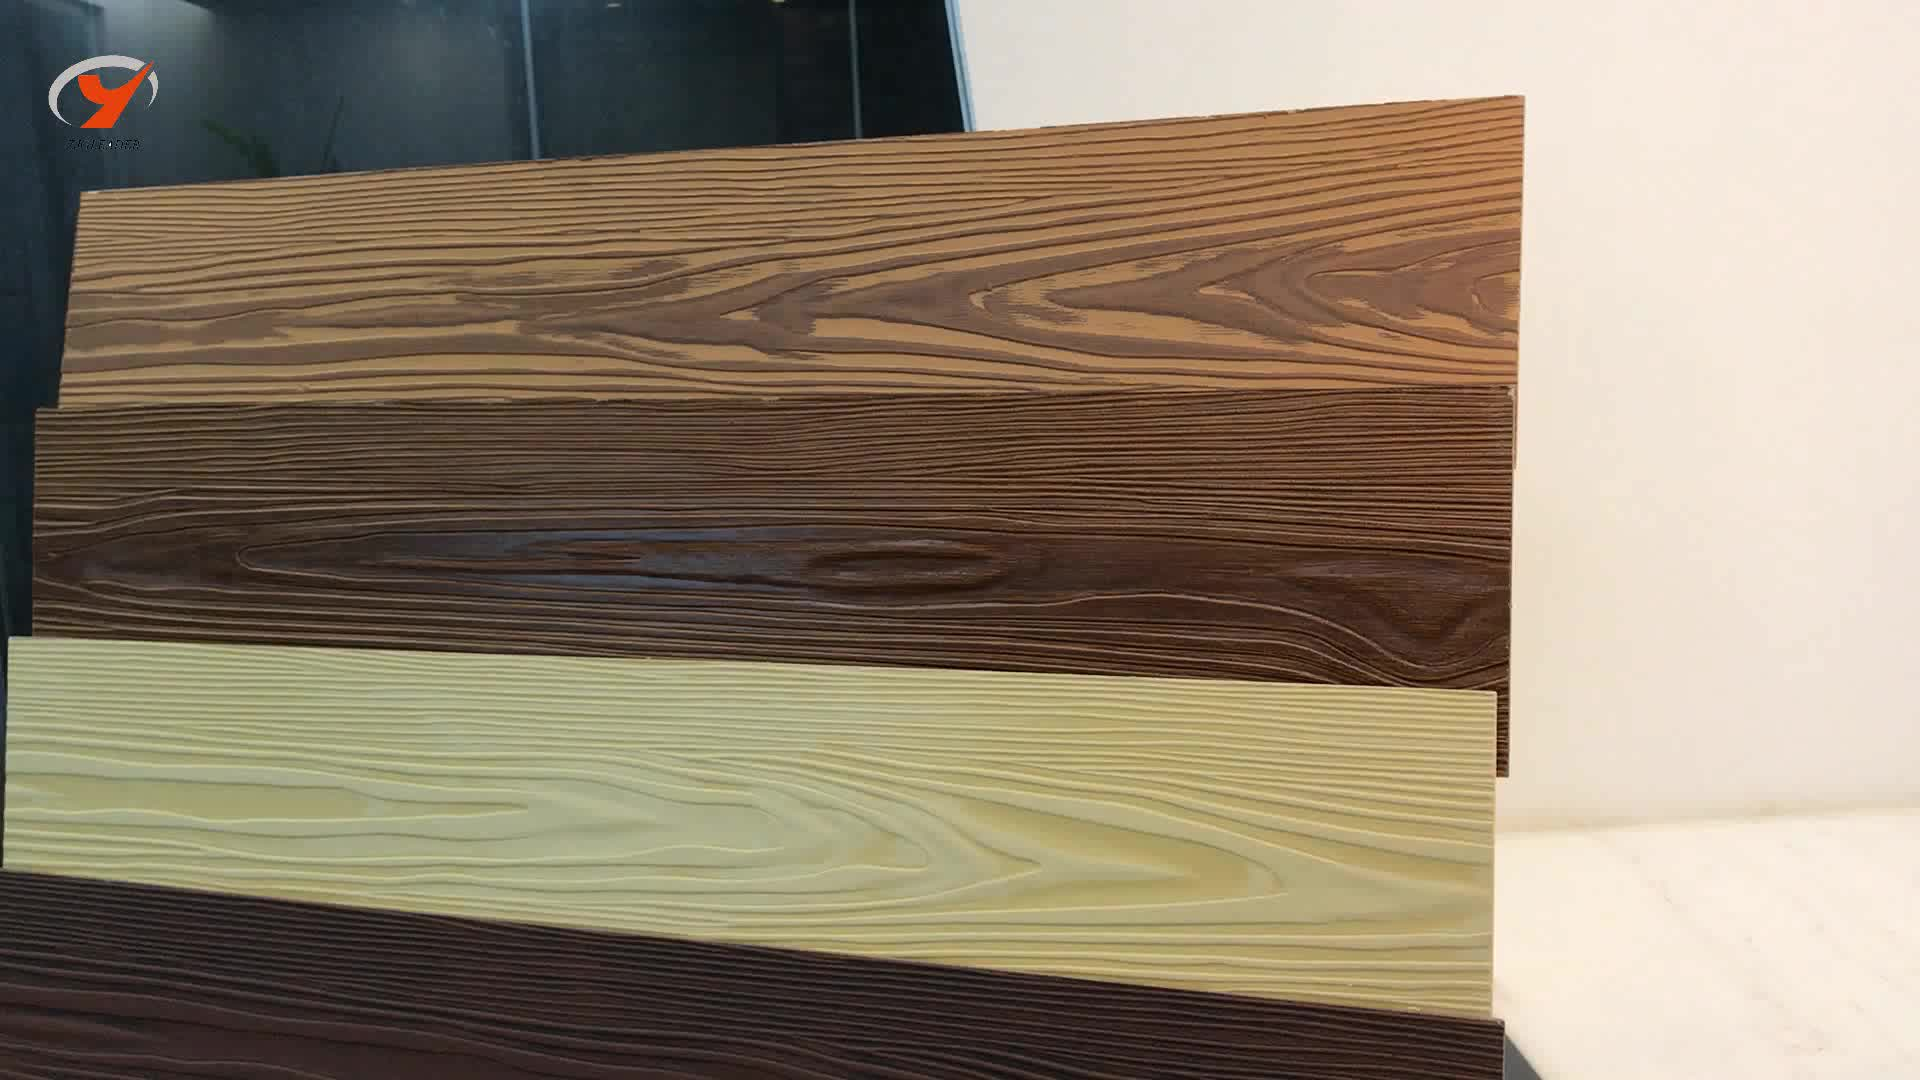 Wood Grain Fiber Cement Siding Panel Exterior Wall